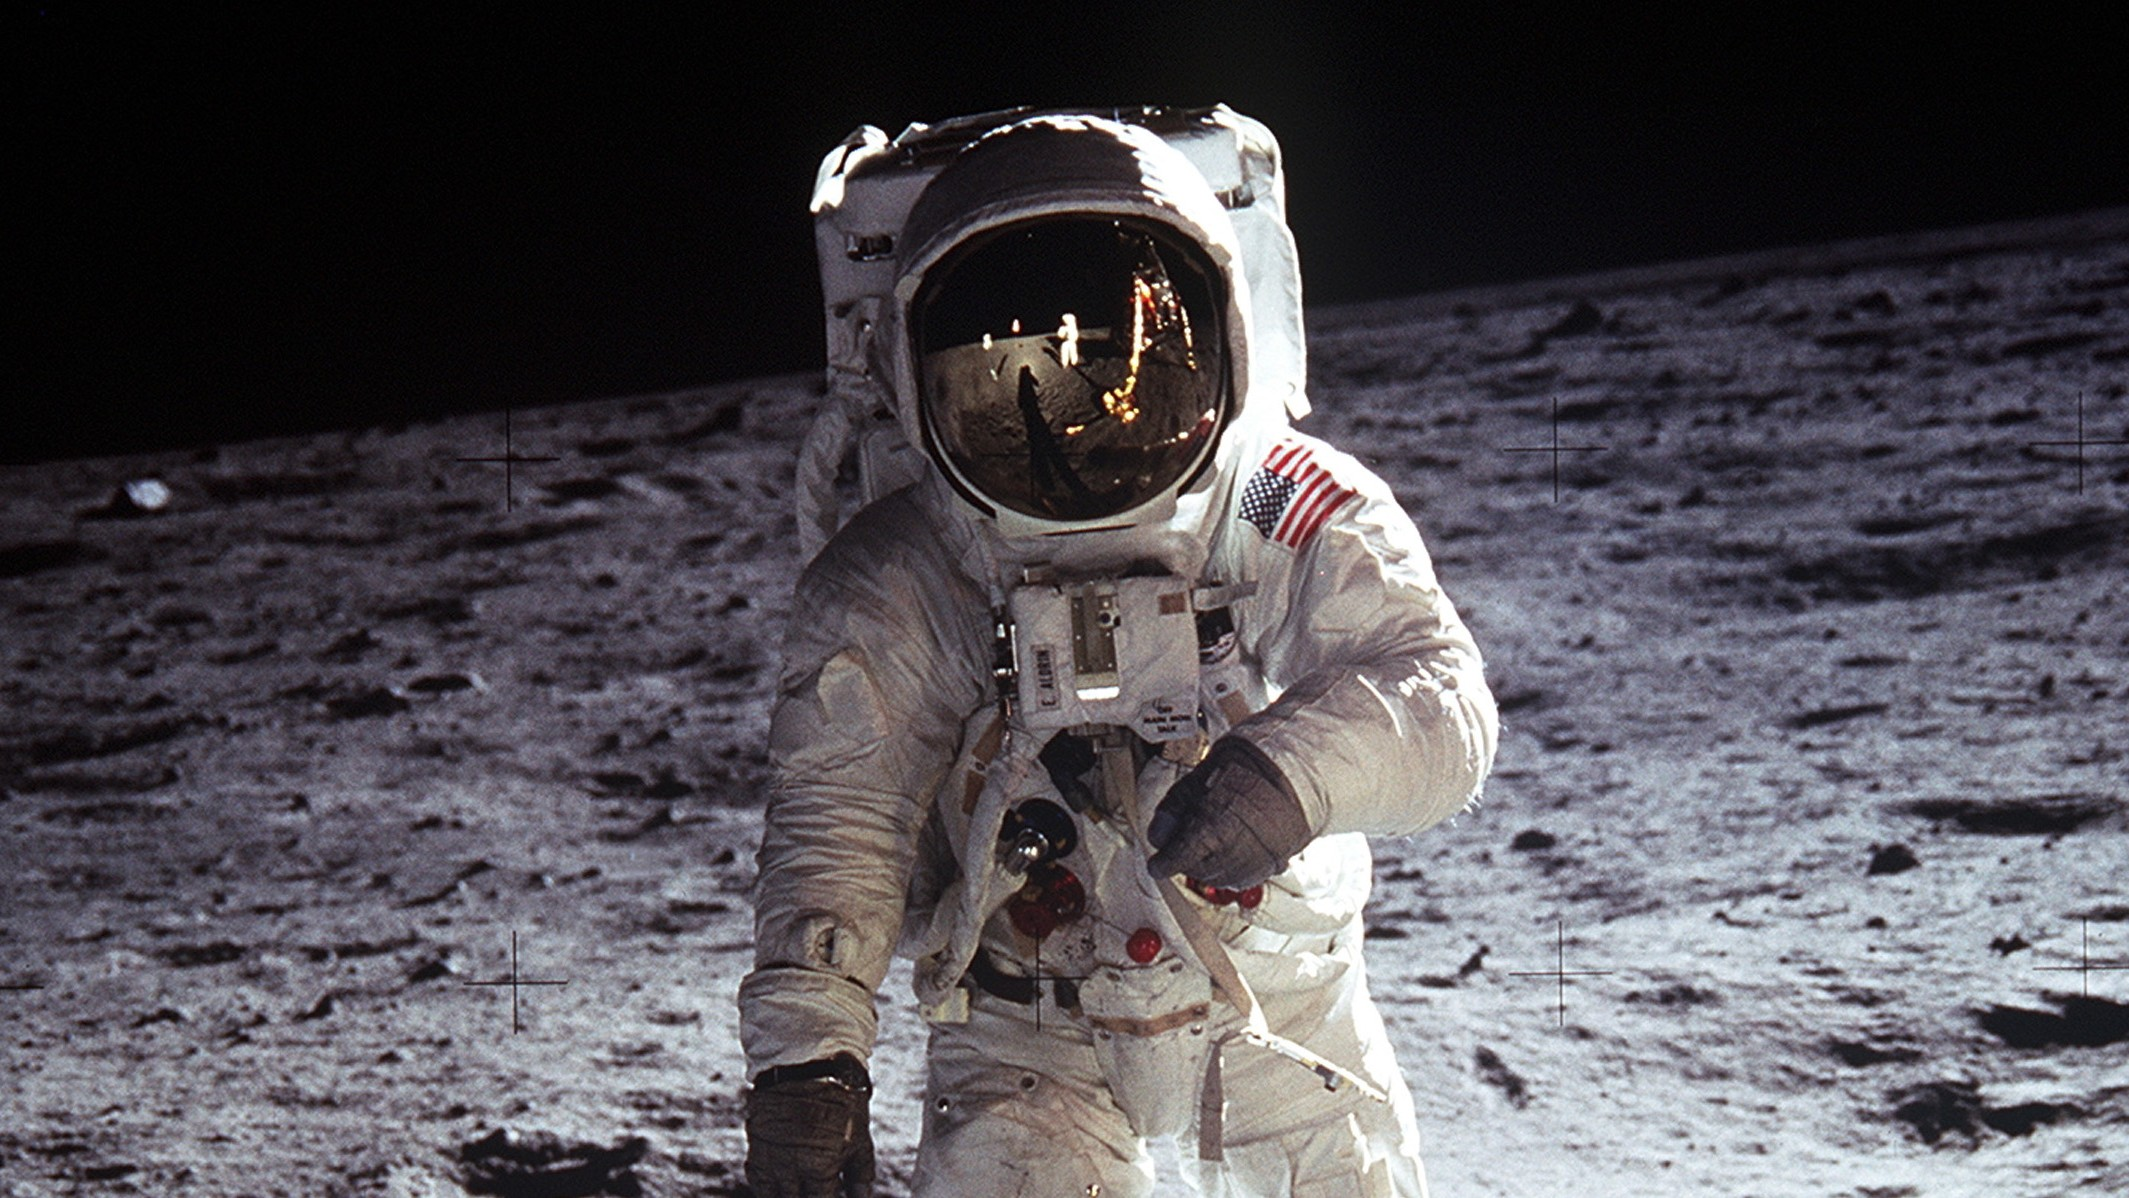 Cardiovascular Problems in Apollo Astronauts Linked to Radiation